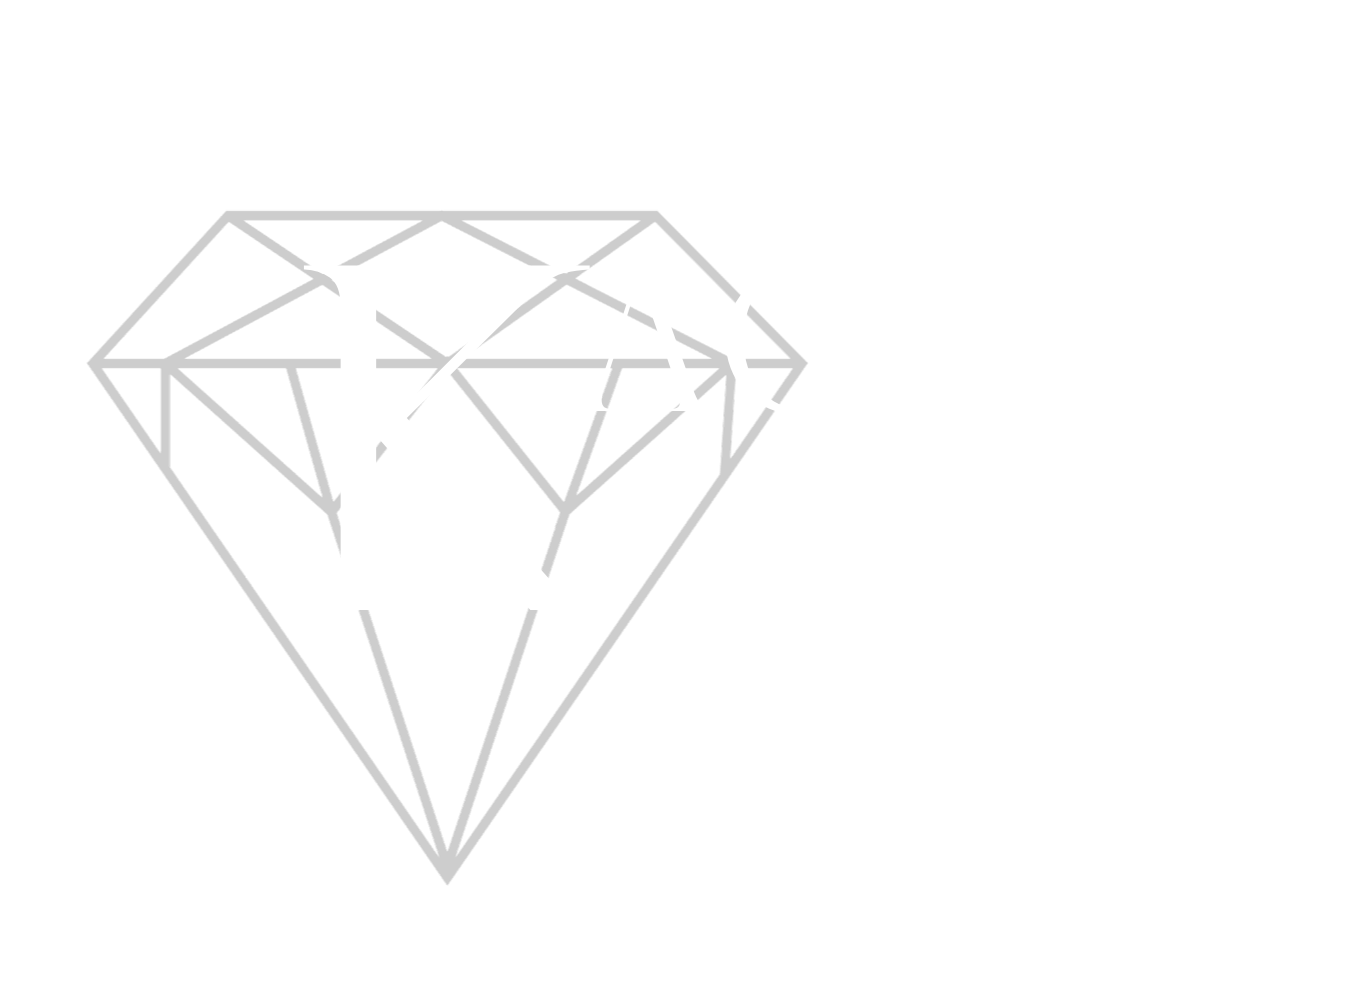 Kacher Fine Jewelry